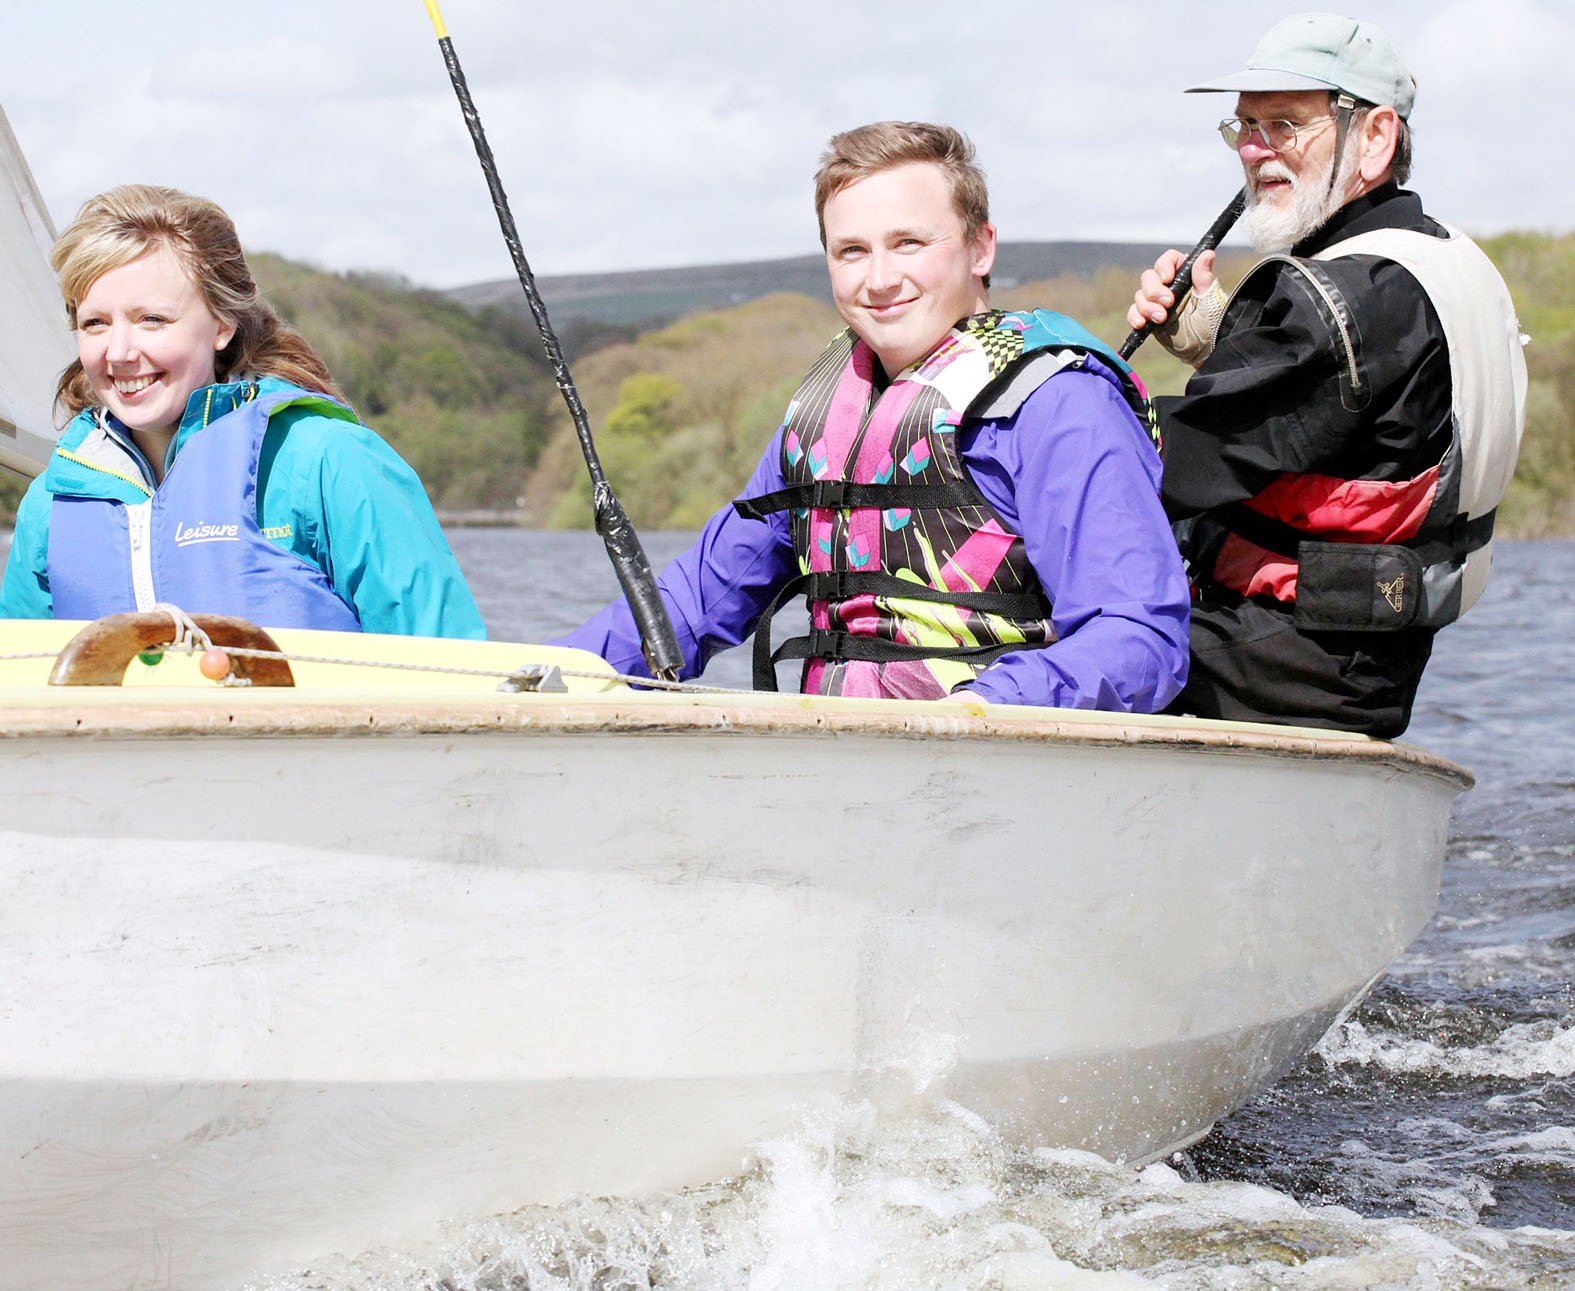 In pictures: Open day at Jumbles Sailing Club